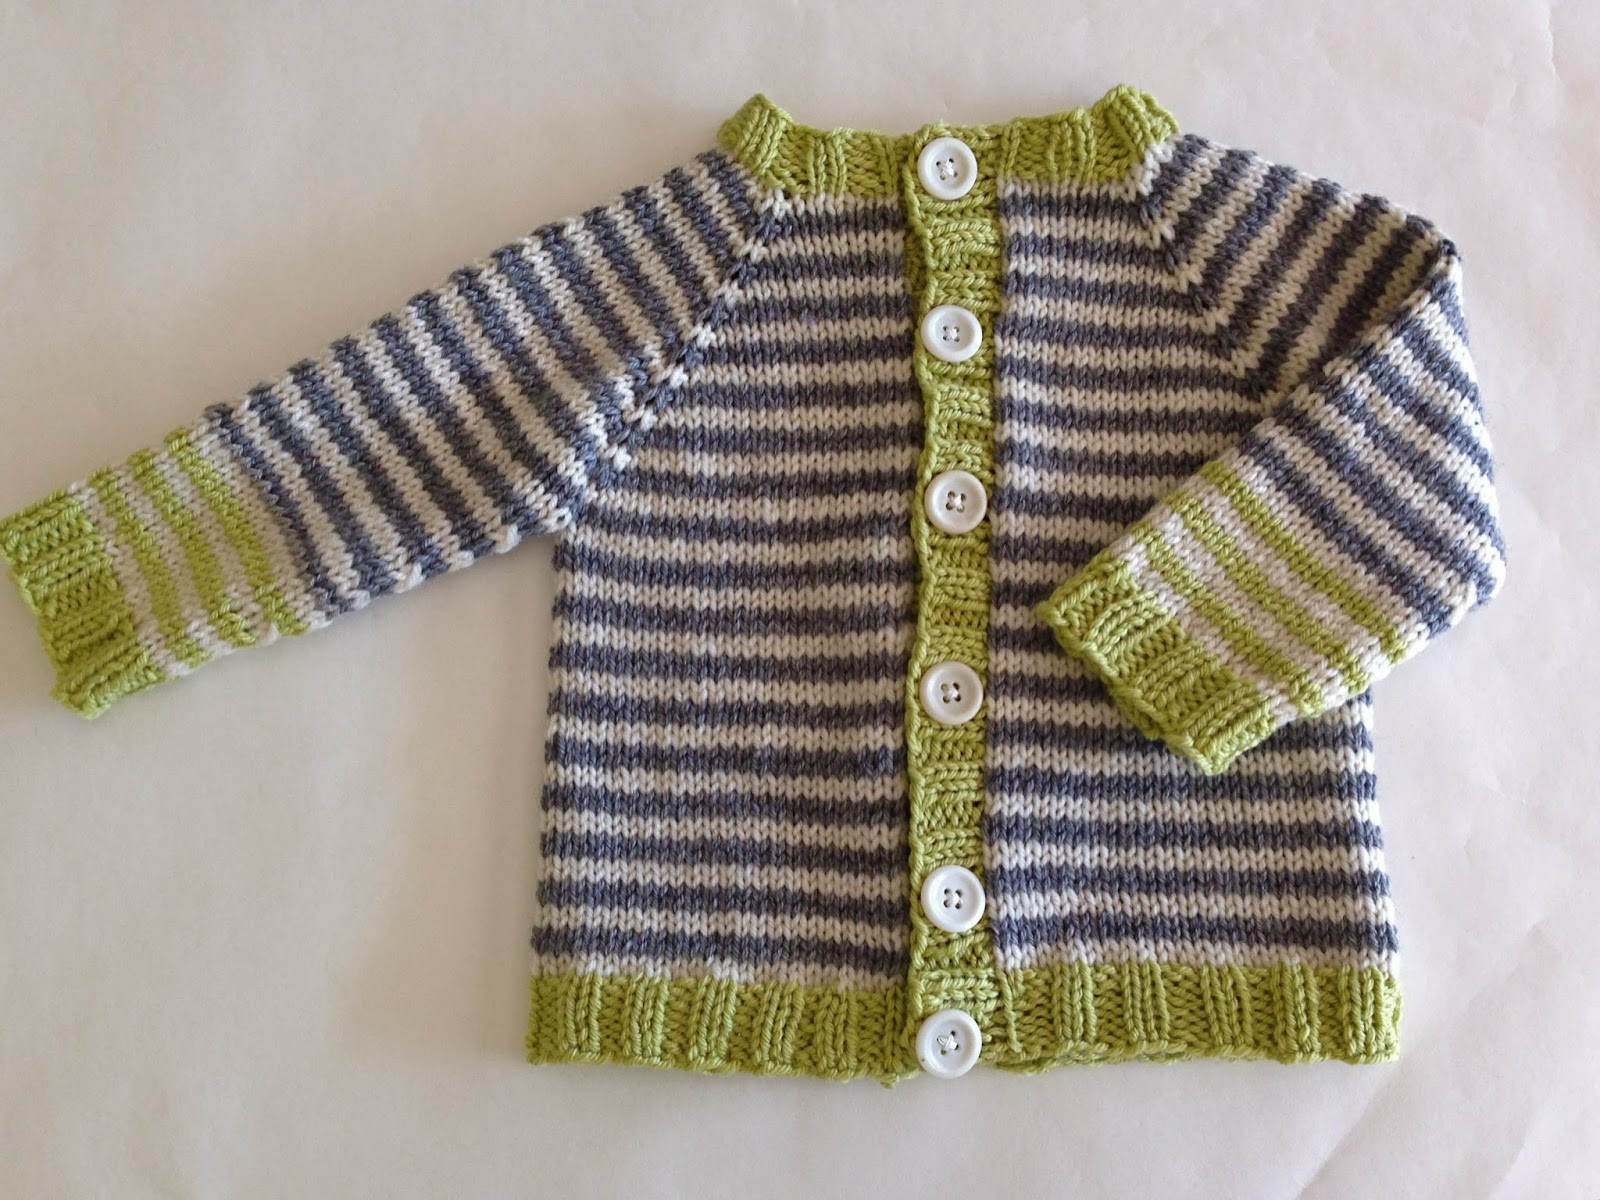 Free Baby Sweater Patterns Inspirational totally Free totally Adorable Baby Cardigan Knitionary Of New 42 Pics Free Baby Sweater Patterns